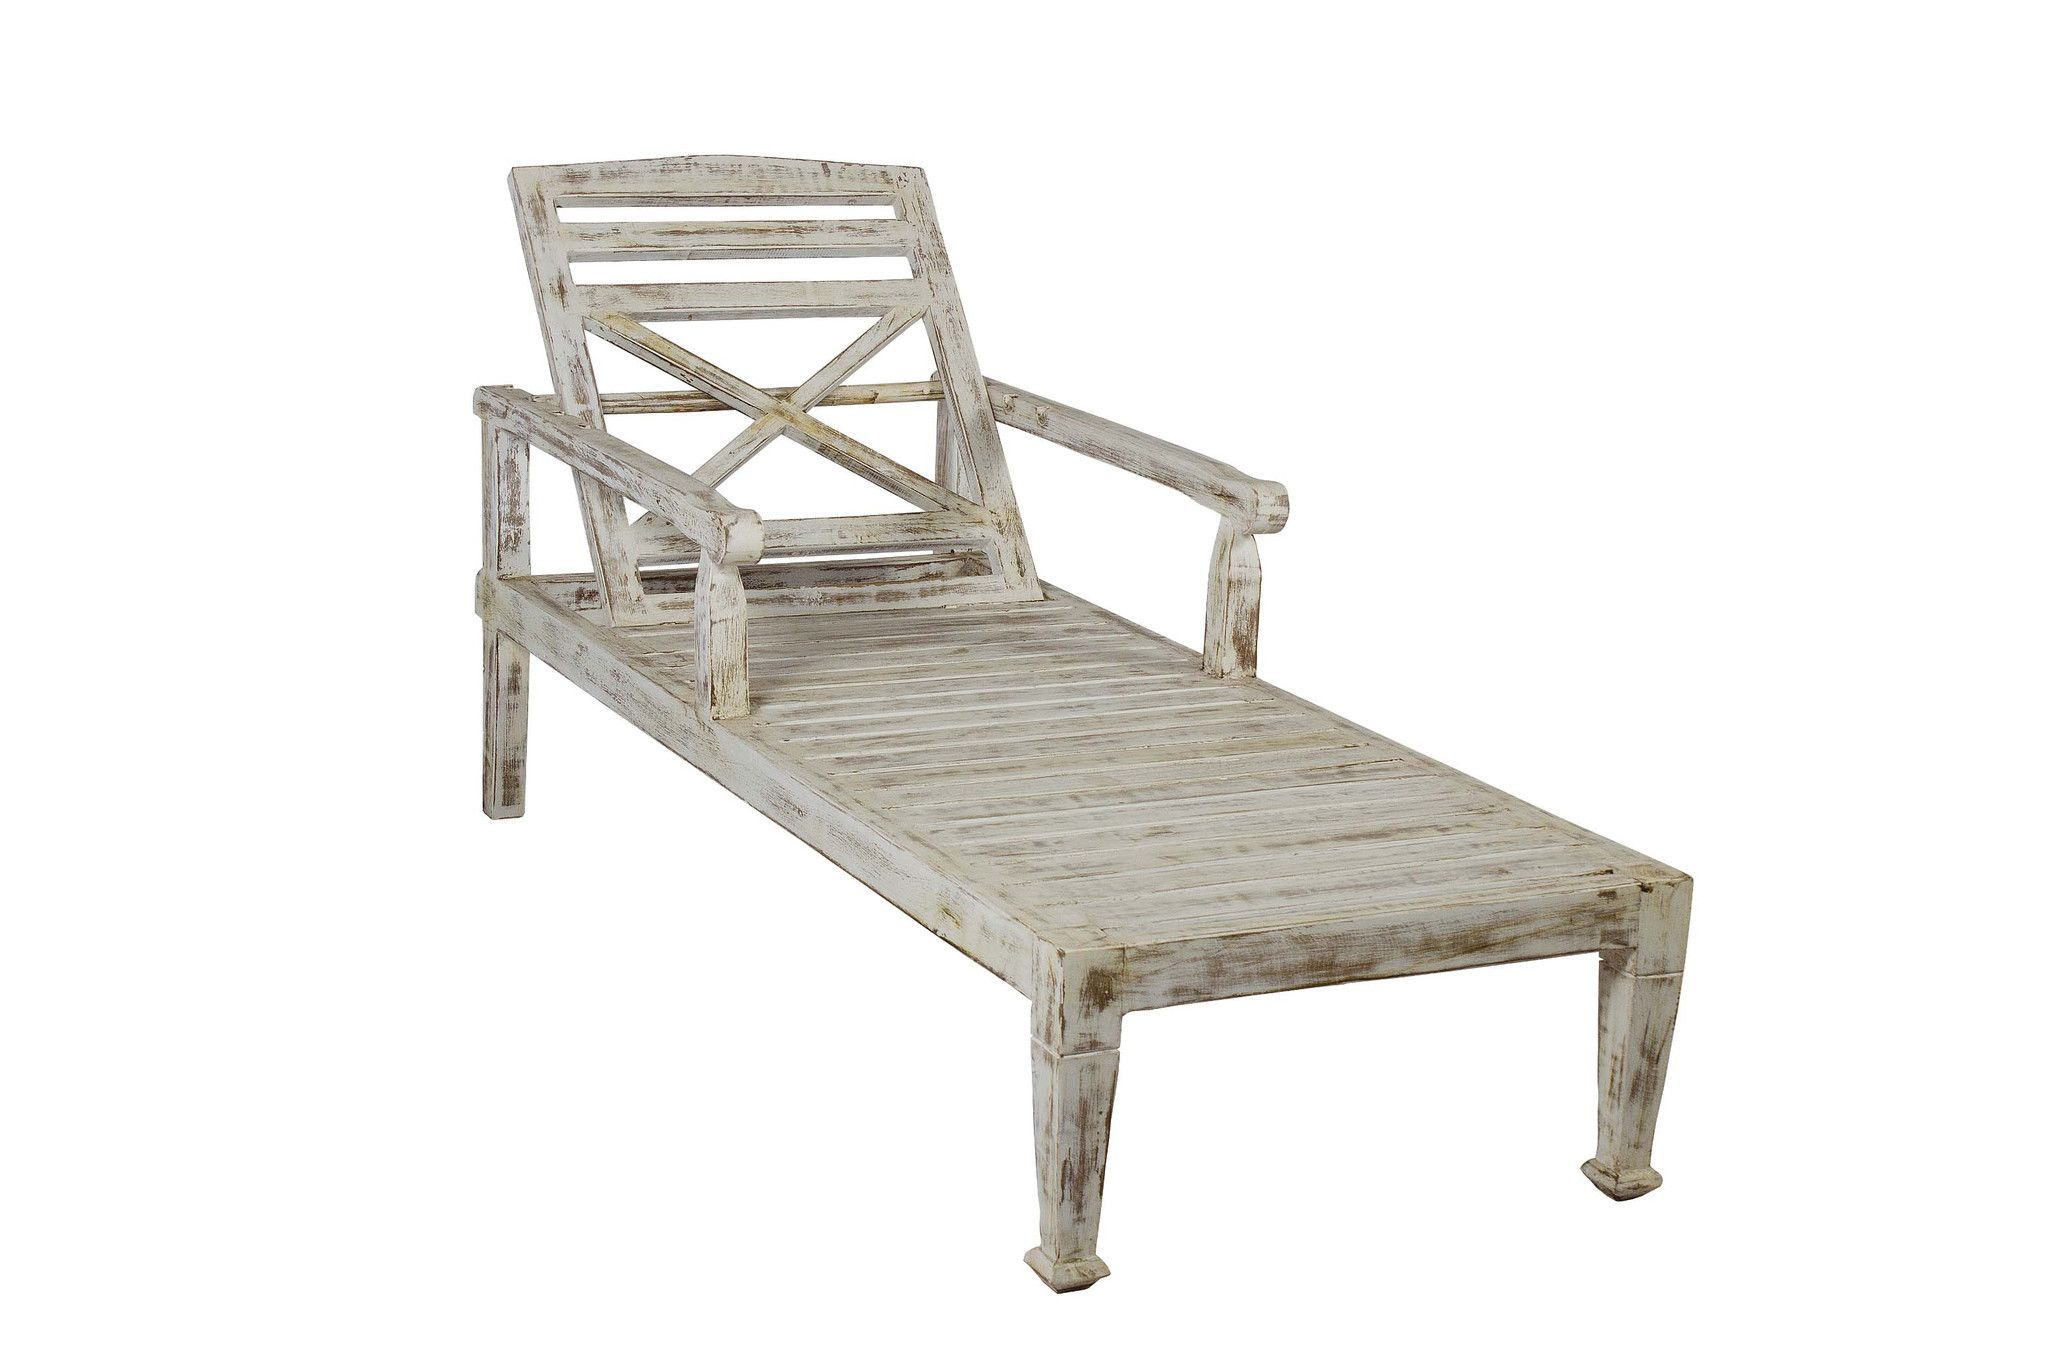 Teak Chaise Lounge Chairs Solid Teak Wood Beach Chaise Lounge Chair Faded White Beach